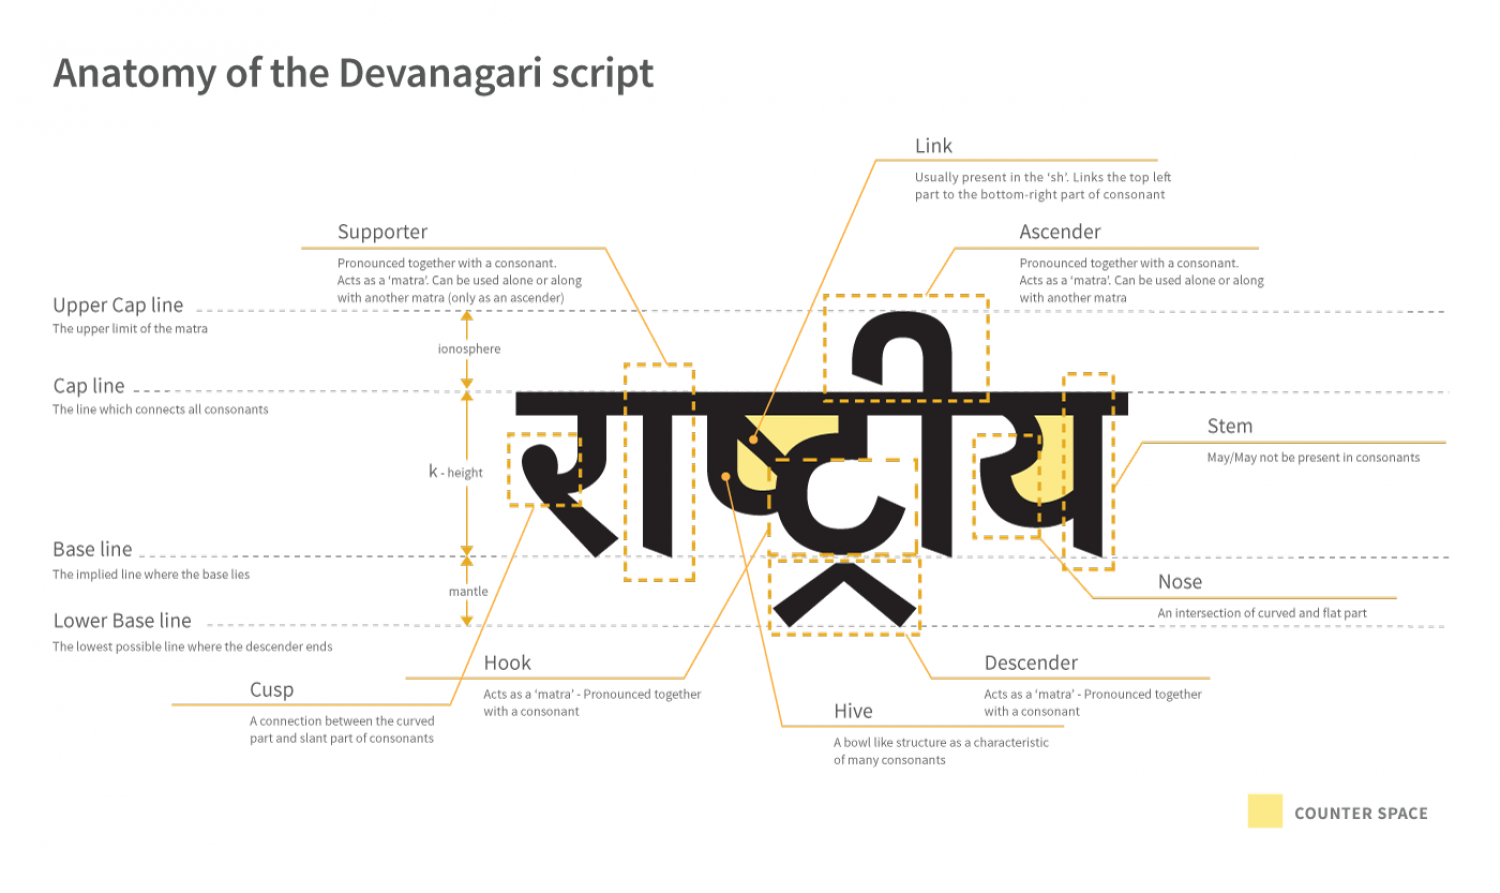 The Anatomy of Devanagari Infographic